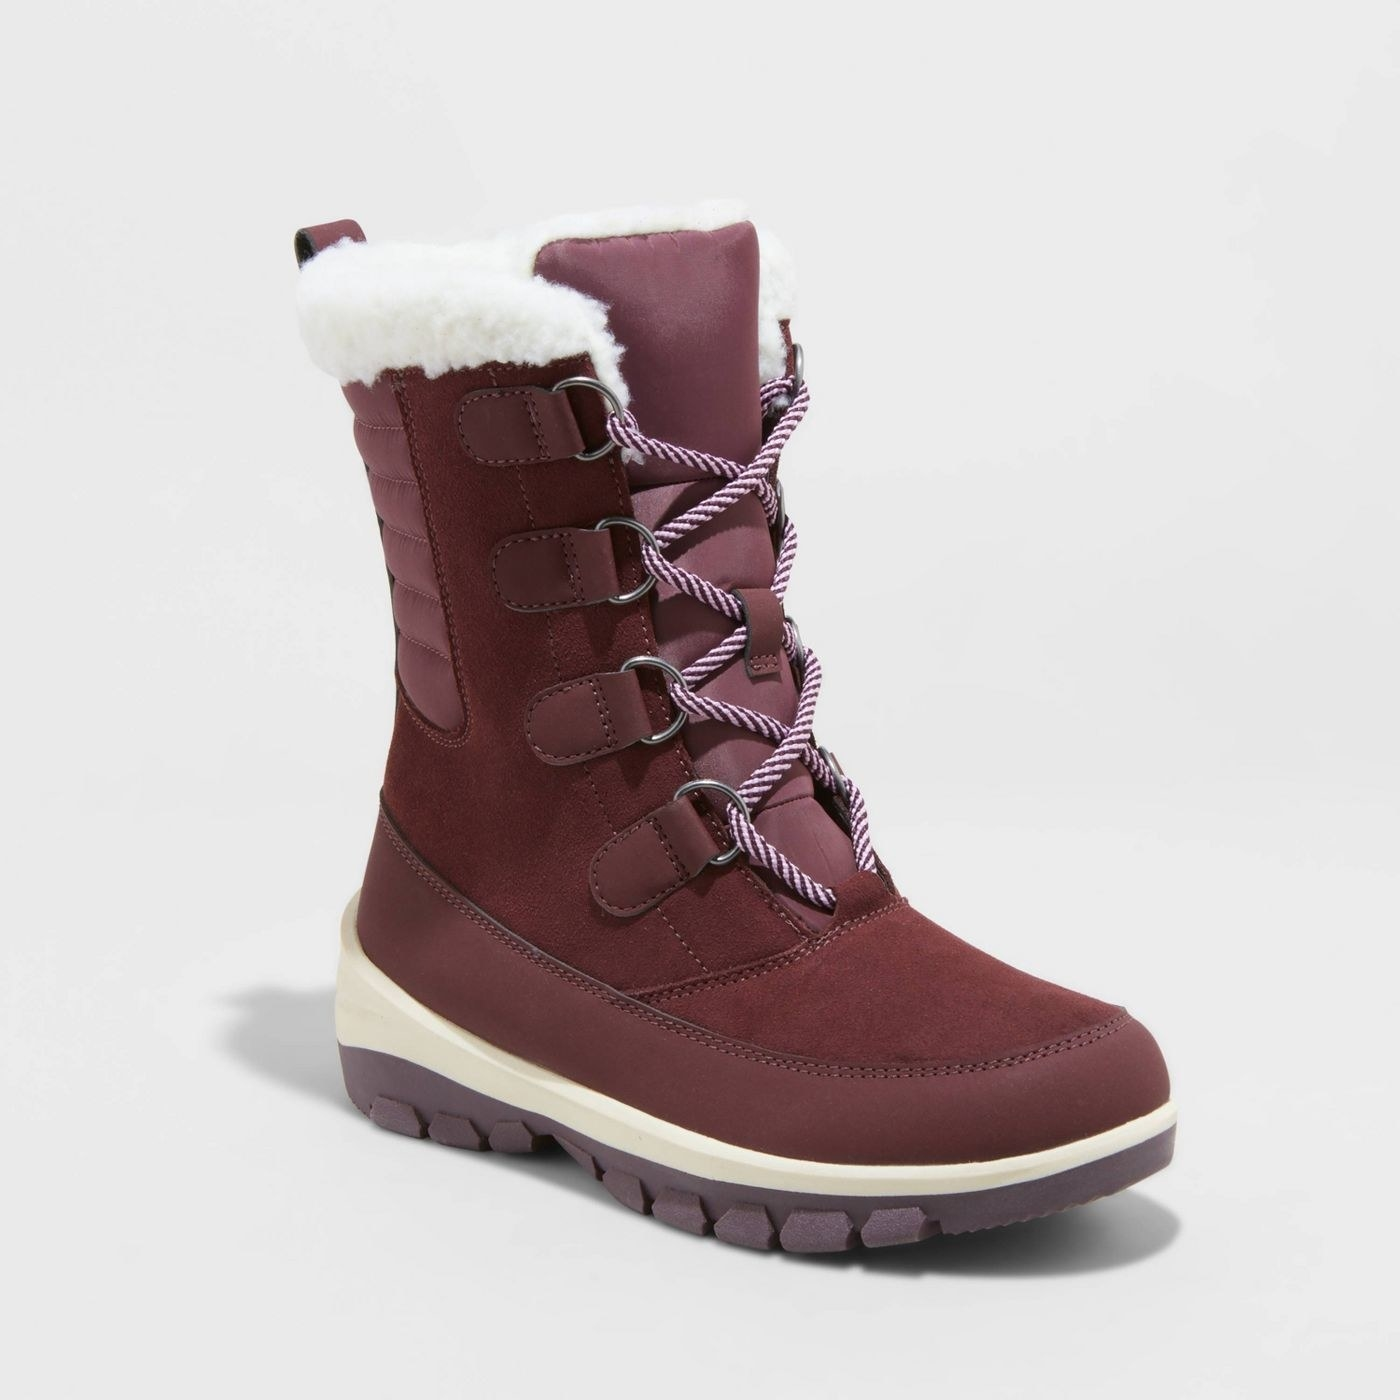 burgundy lace up snowboots